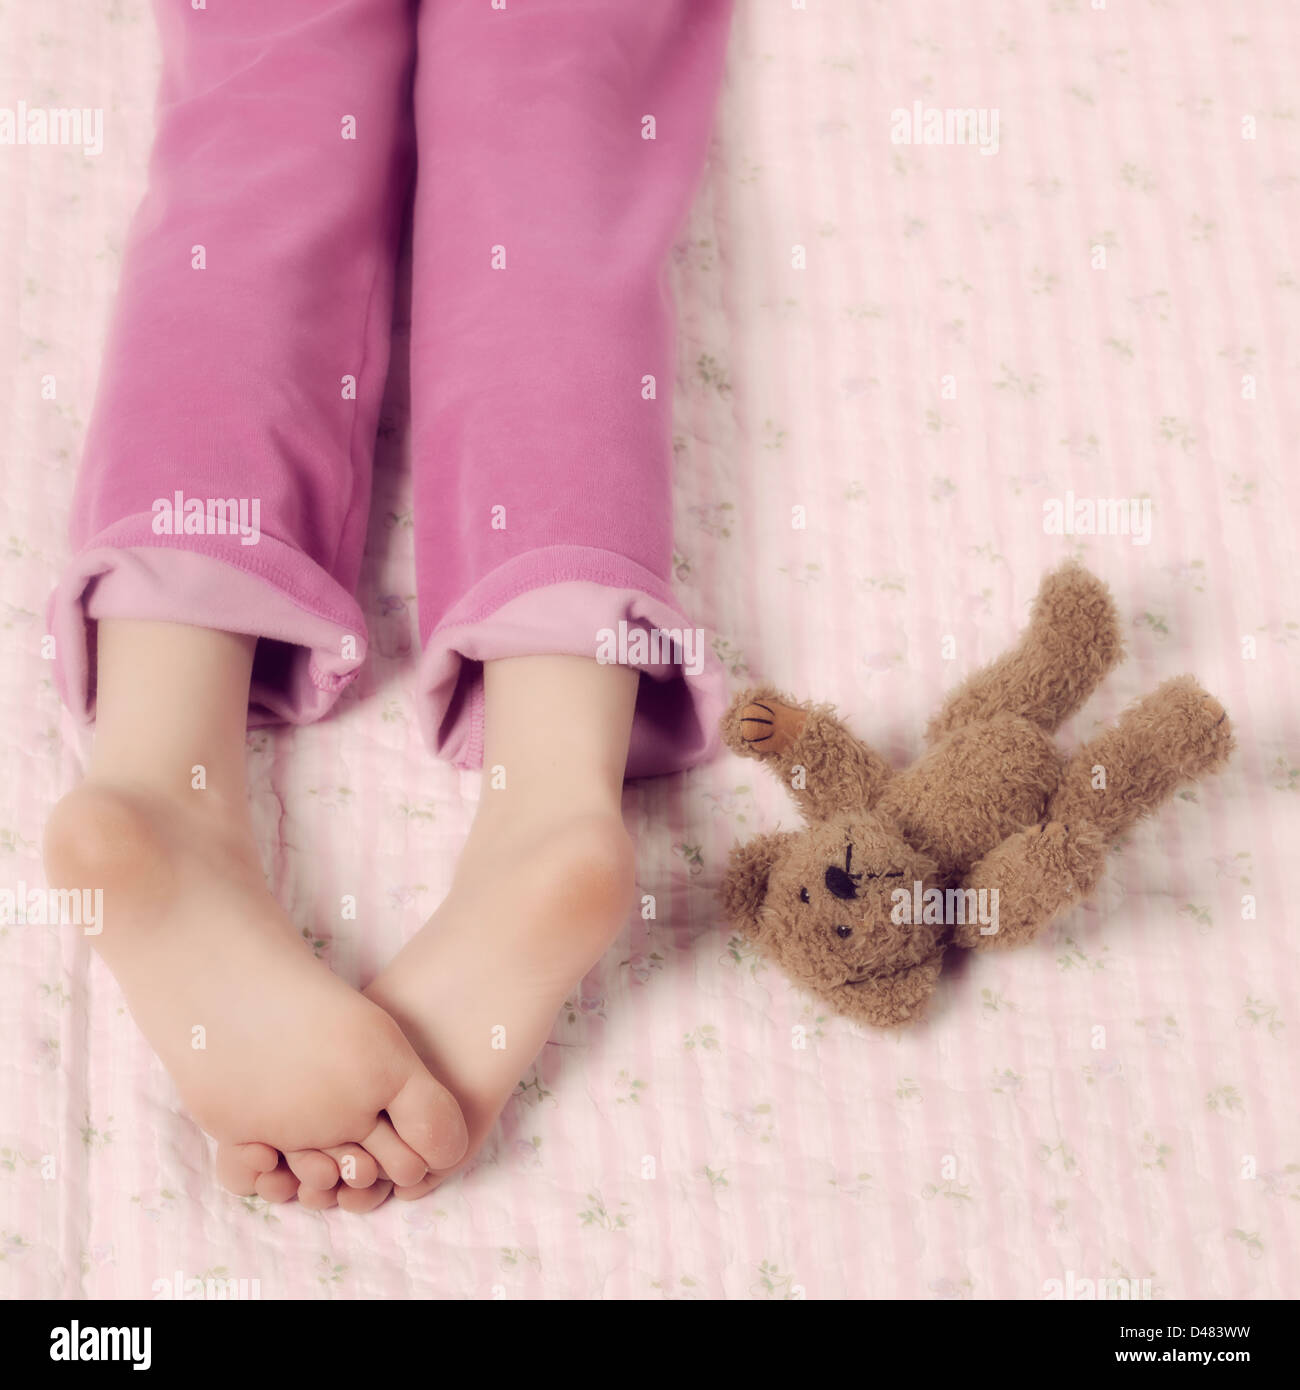 female feet in pink pyjamas with a teddy bear - Stock Image